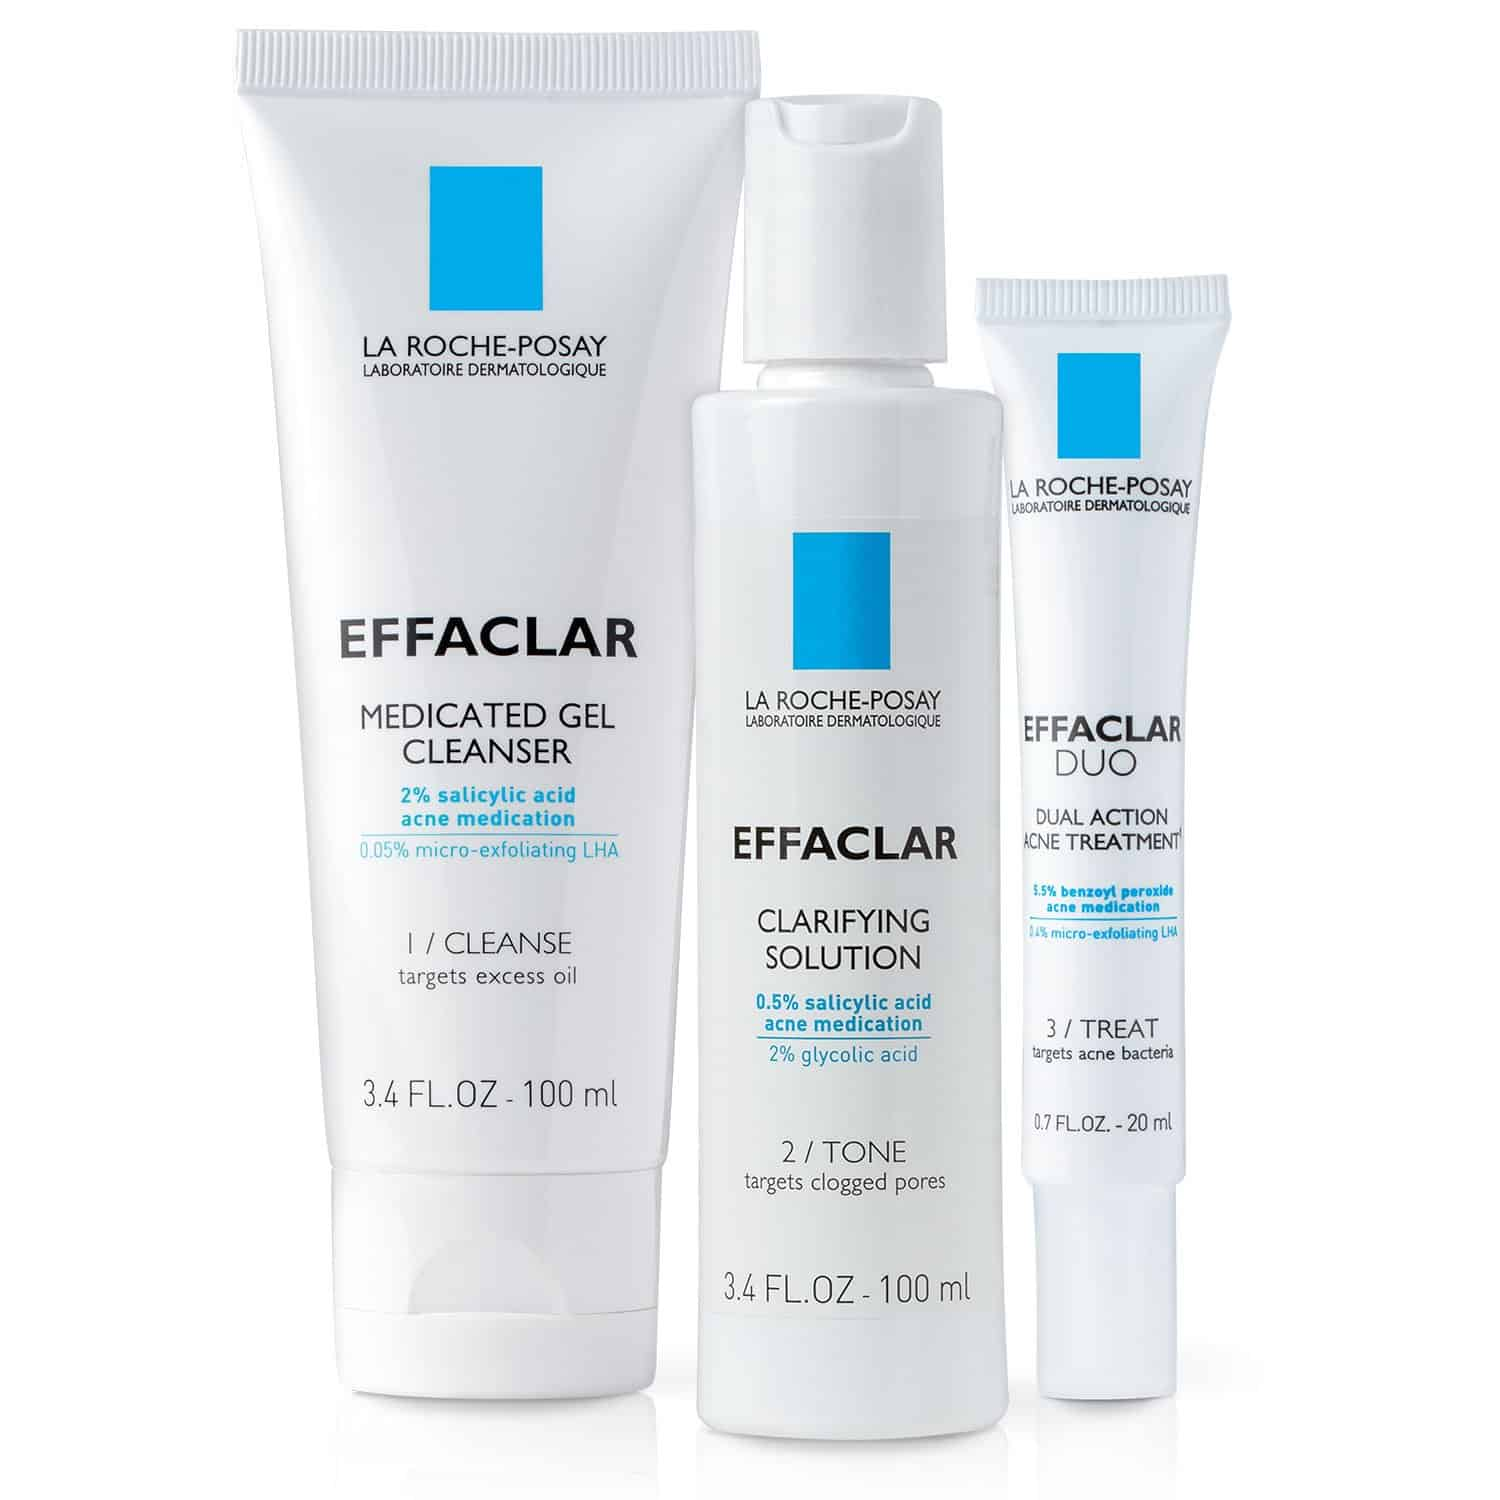 La Roche-Posay Effaclar Acne Treatment 3-Step Skin Care Set